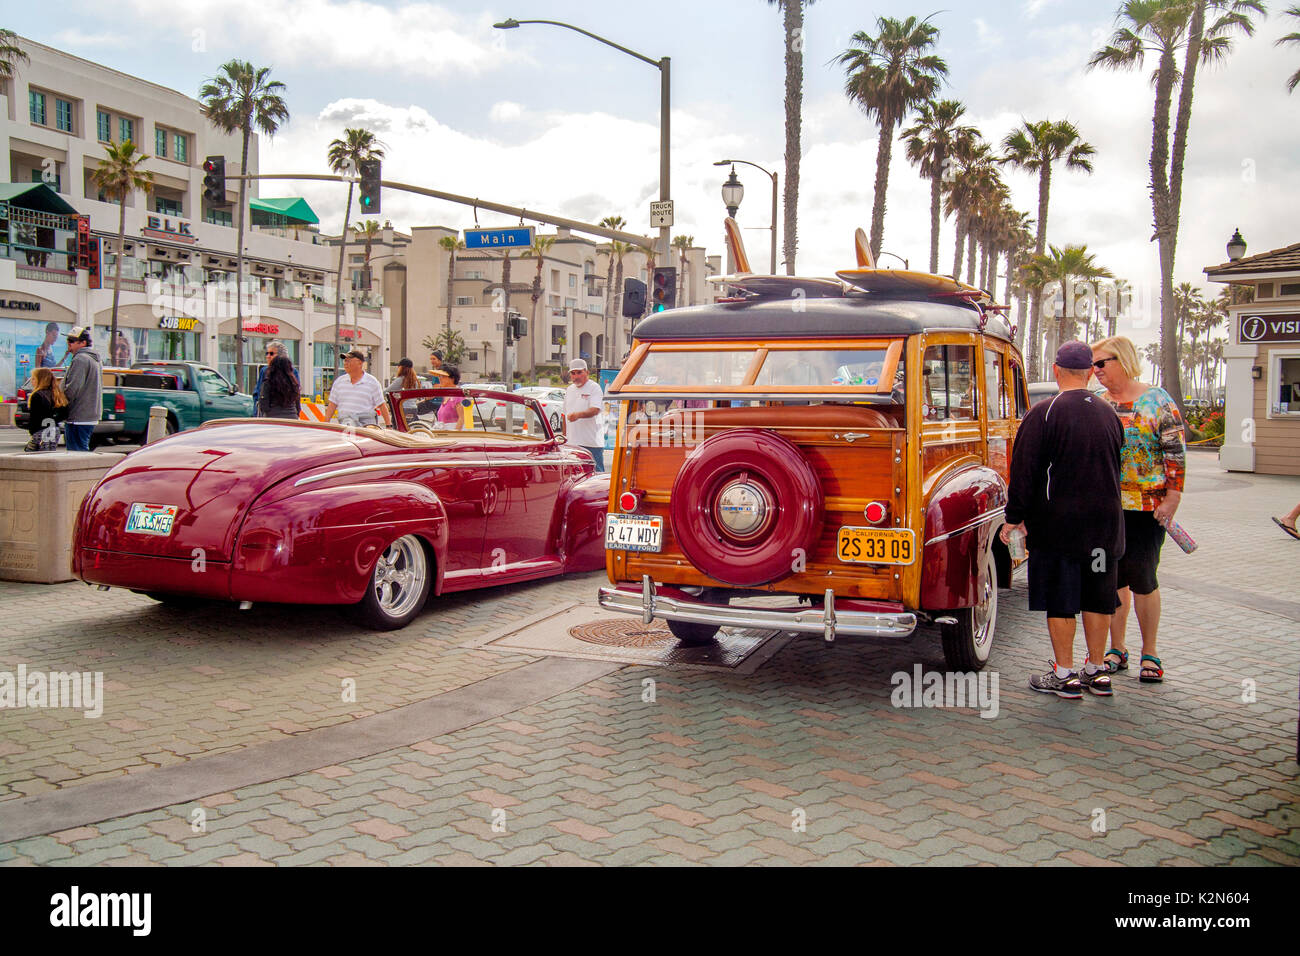 A 1947 Ford convertible and 1947 Ford Super Deluxe 'woodie' station wagon are on display at a classic car - Stock Image